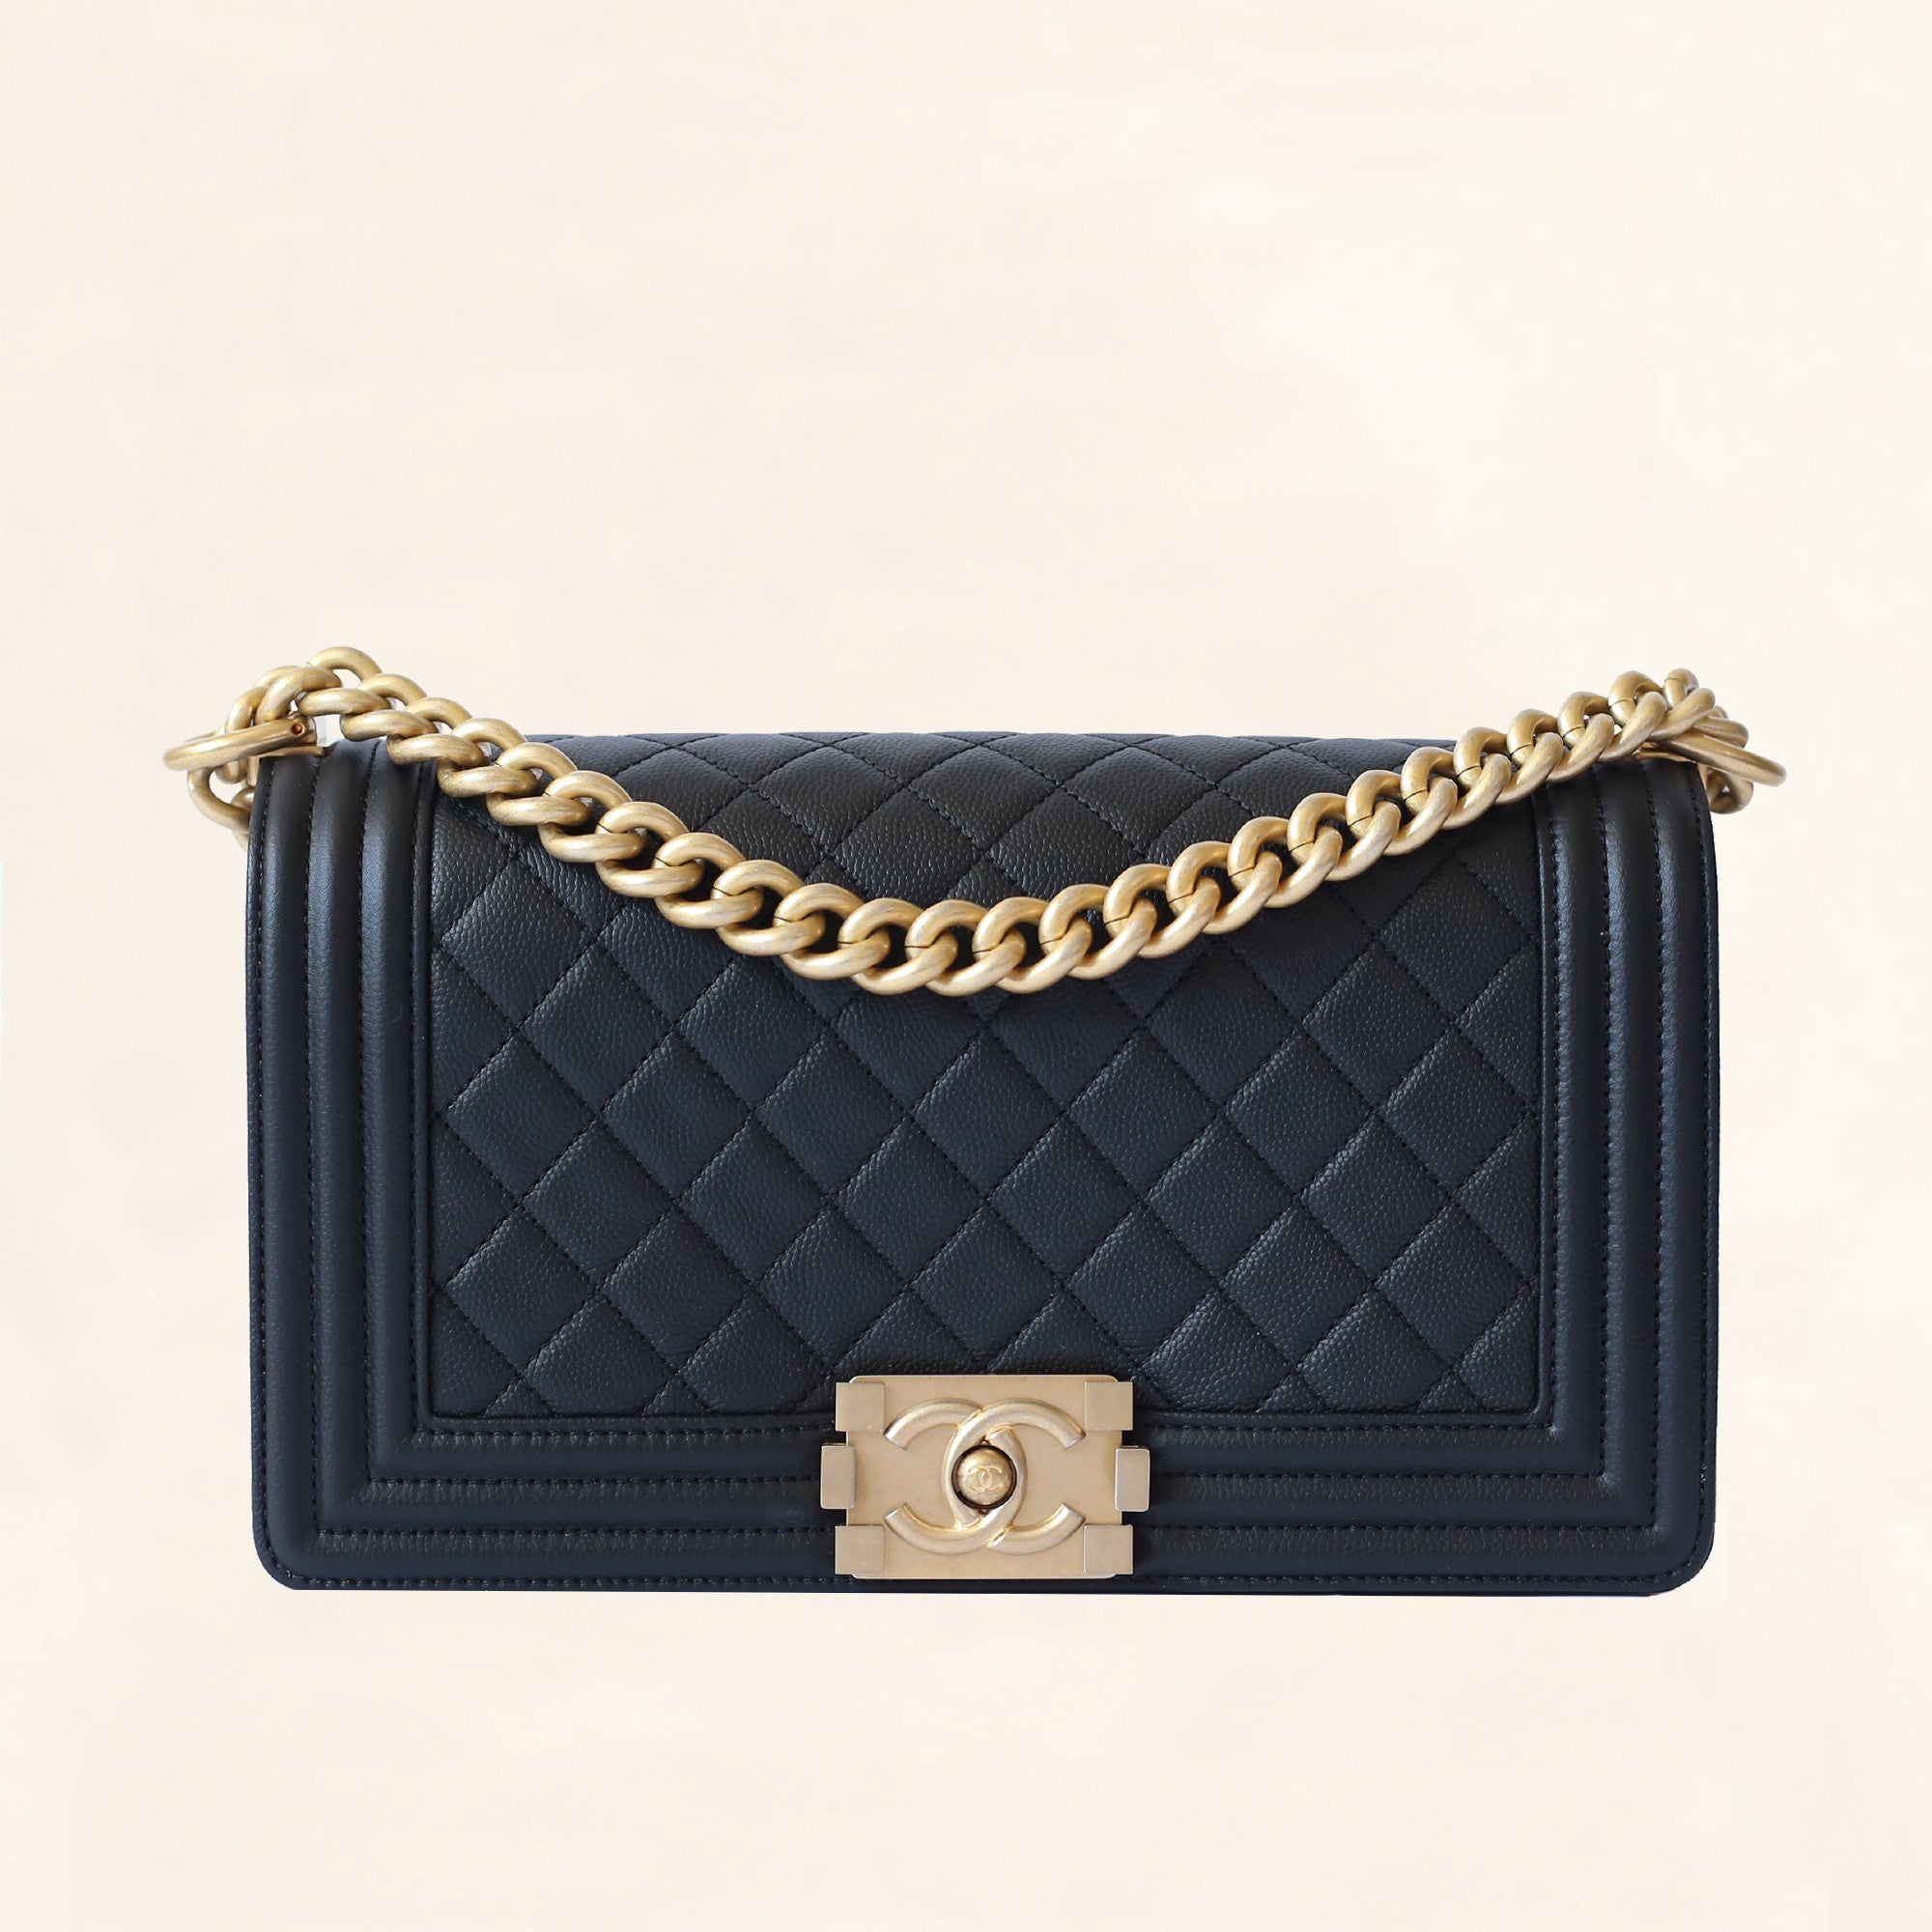 f399068f9102c3 Chanel | Caviar Boy Bag with Aged Gold Hardware | Old Medium - The -Collectory